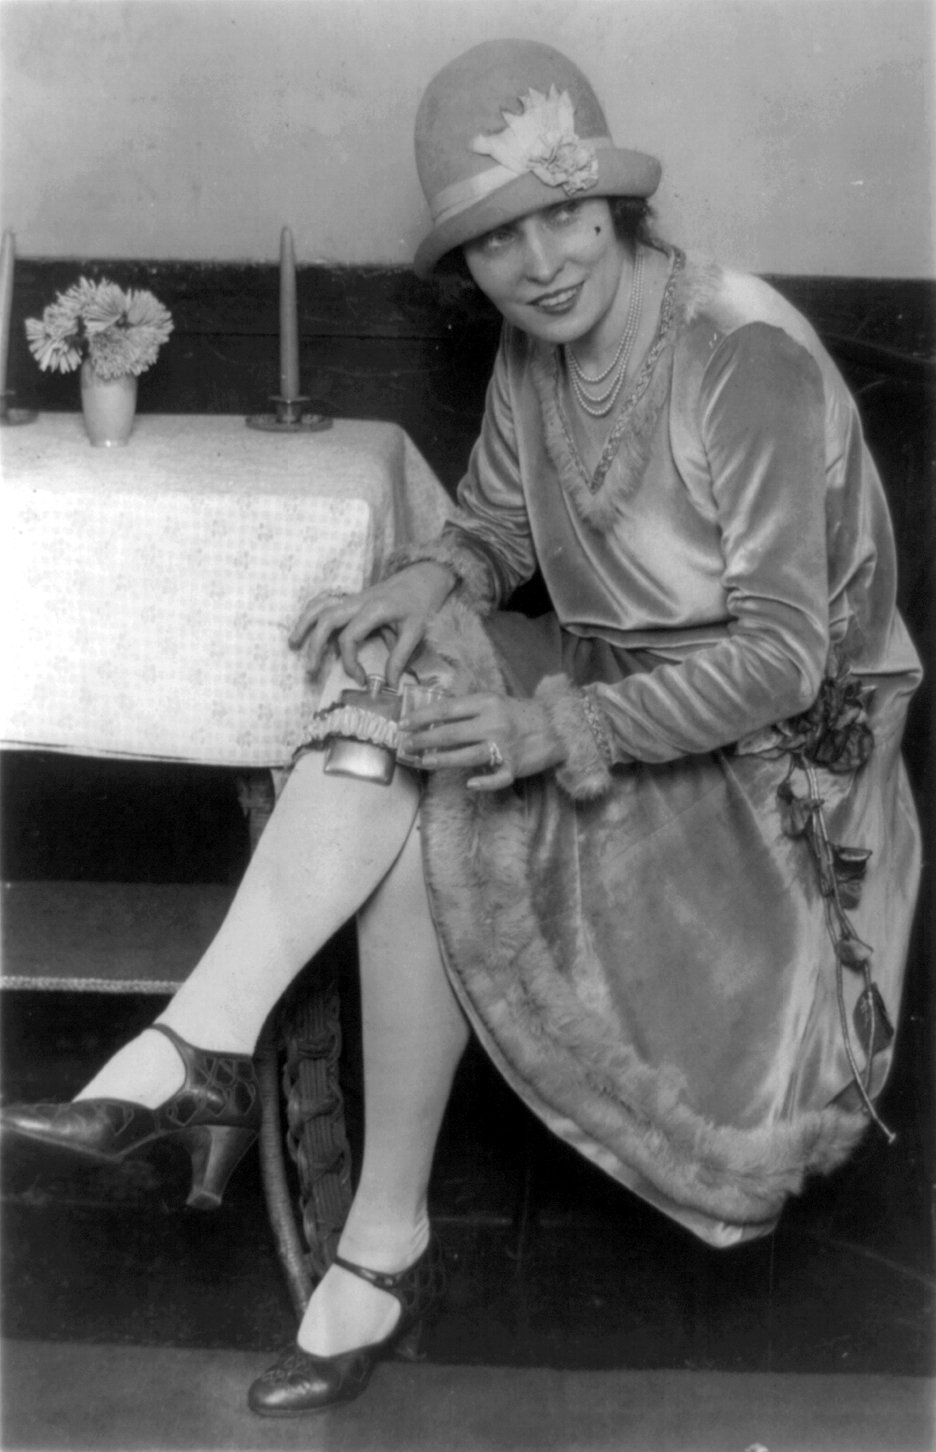 Mlle. Rhea seated with flask in garter on leg, 1926. Image via Wikimedia Commons